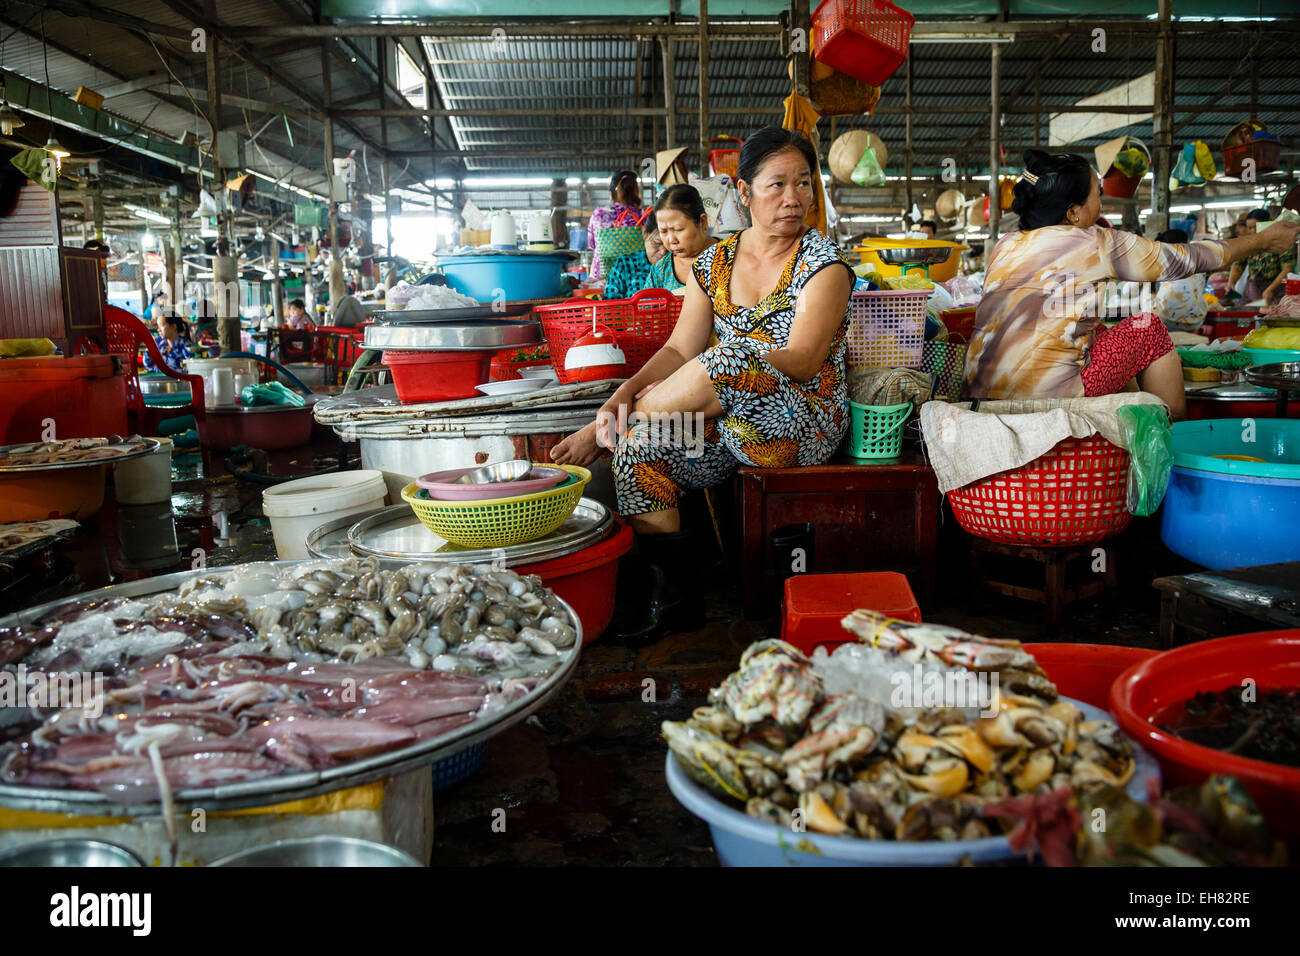 Can Tho Market, Mekong Delta, Vietnam, Indochina, Southeast Asia, Asia - Stock Image